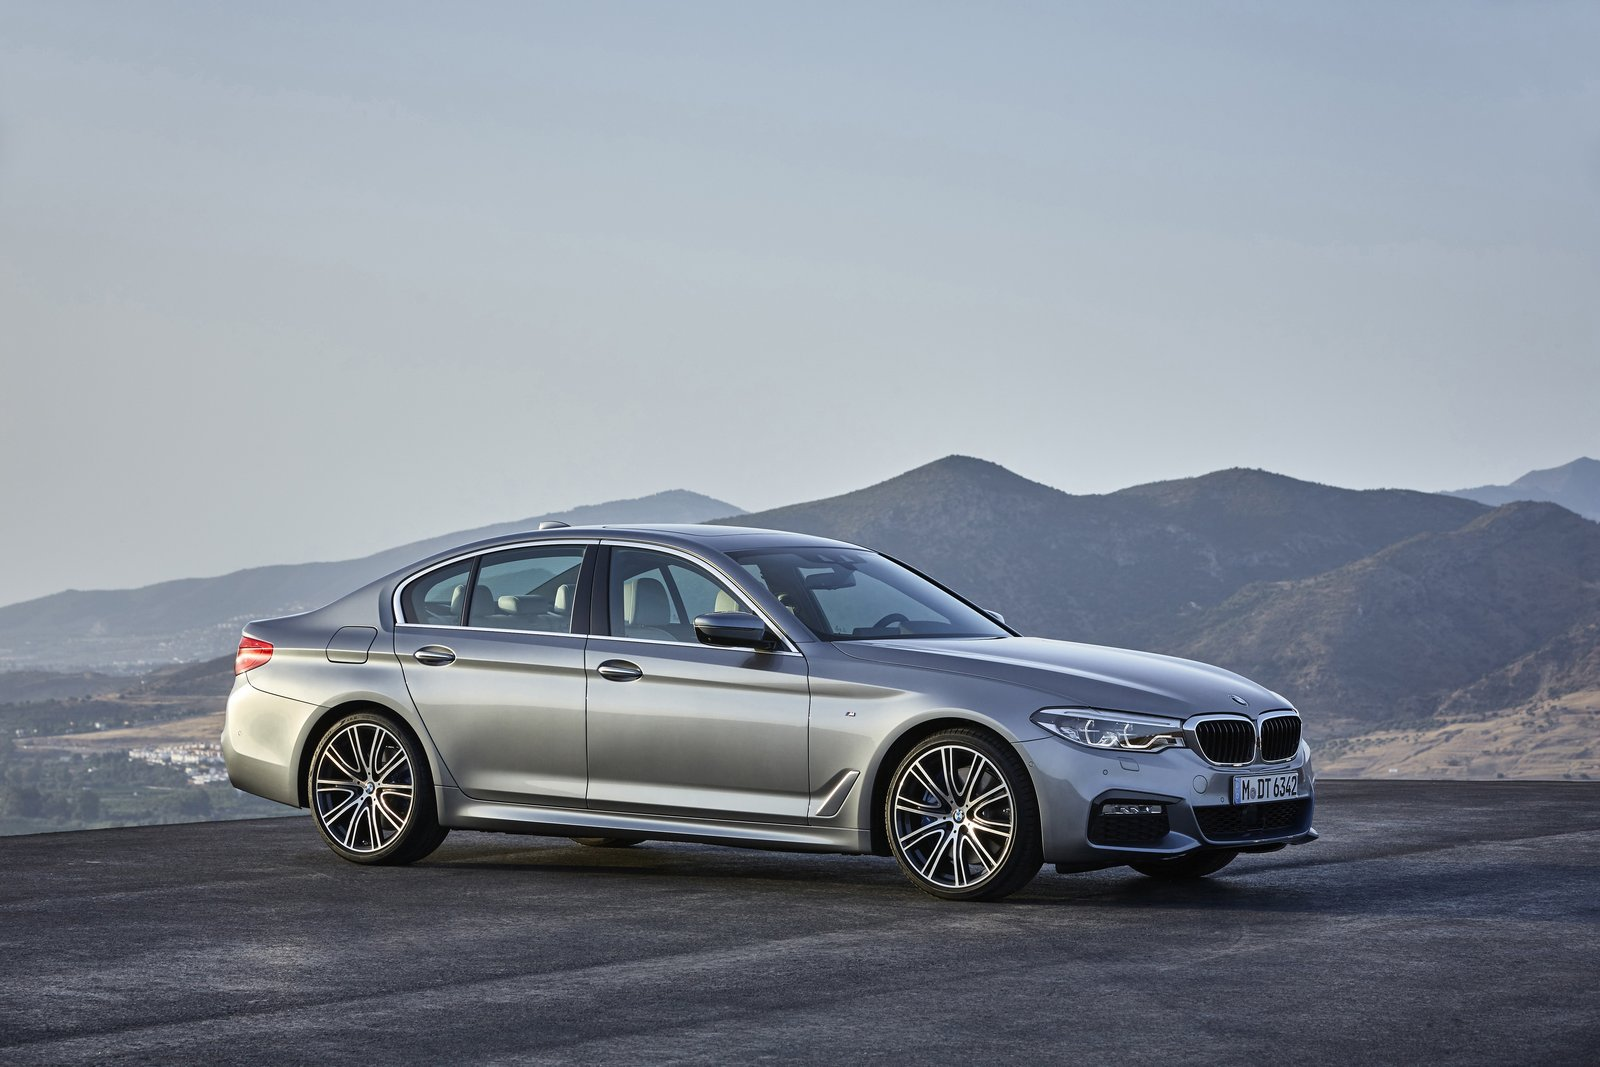 bmw 540d slated to bring diesel power to the u s. Black Bedroom Furniture Sets. Home Design Ideas